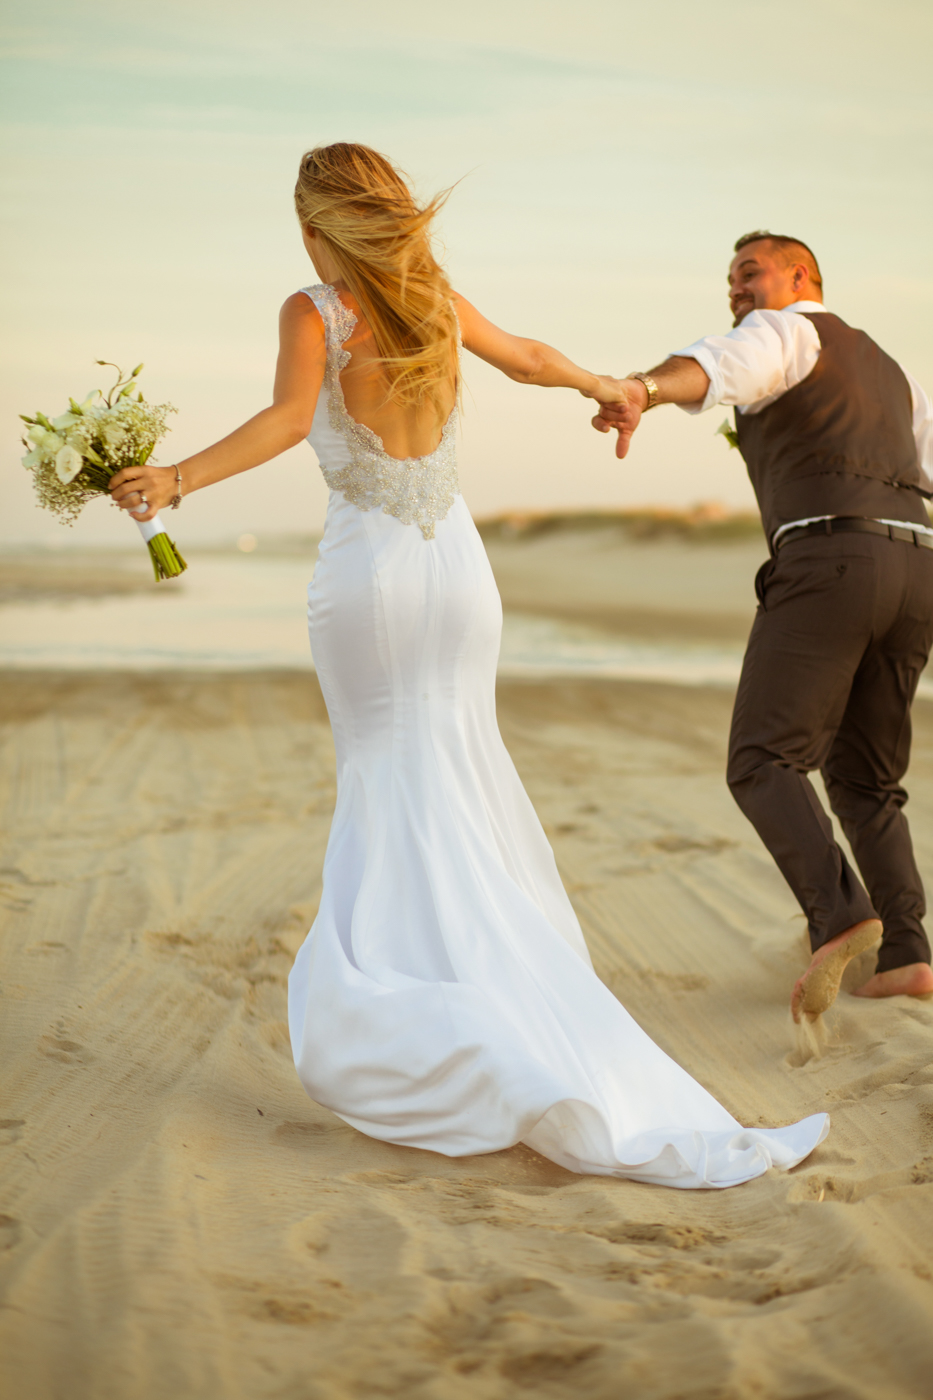 Beautiful Brazilian Beach Wedding North Carolina-Ksenia-Pro-Photography-55